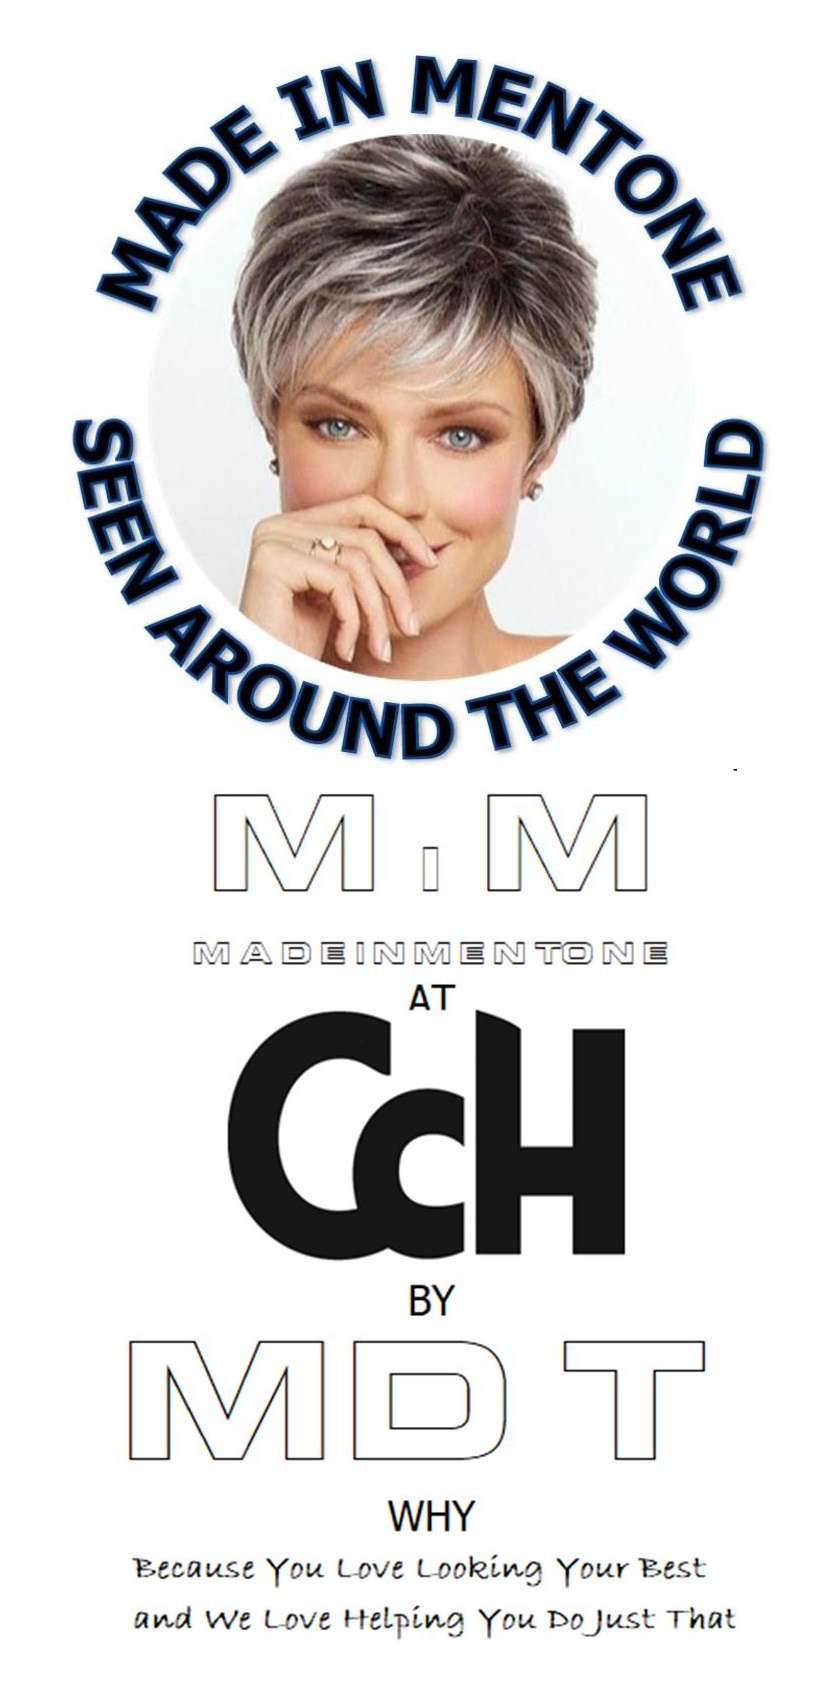 Made In Mentone CROPPED Circle With M I M Publication1.Jpg